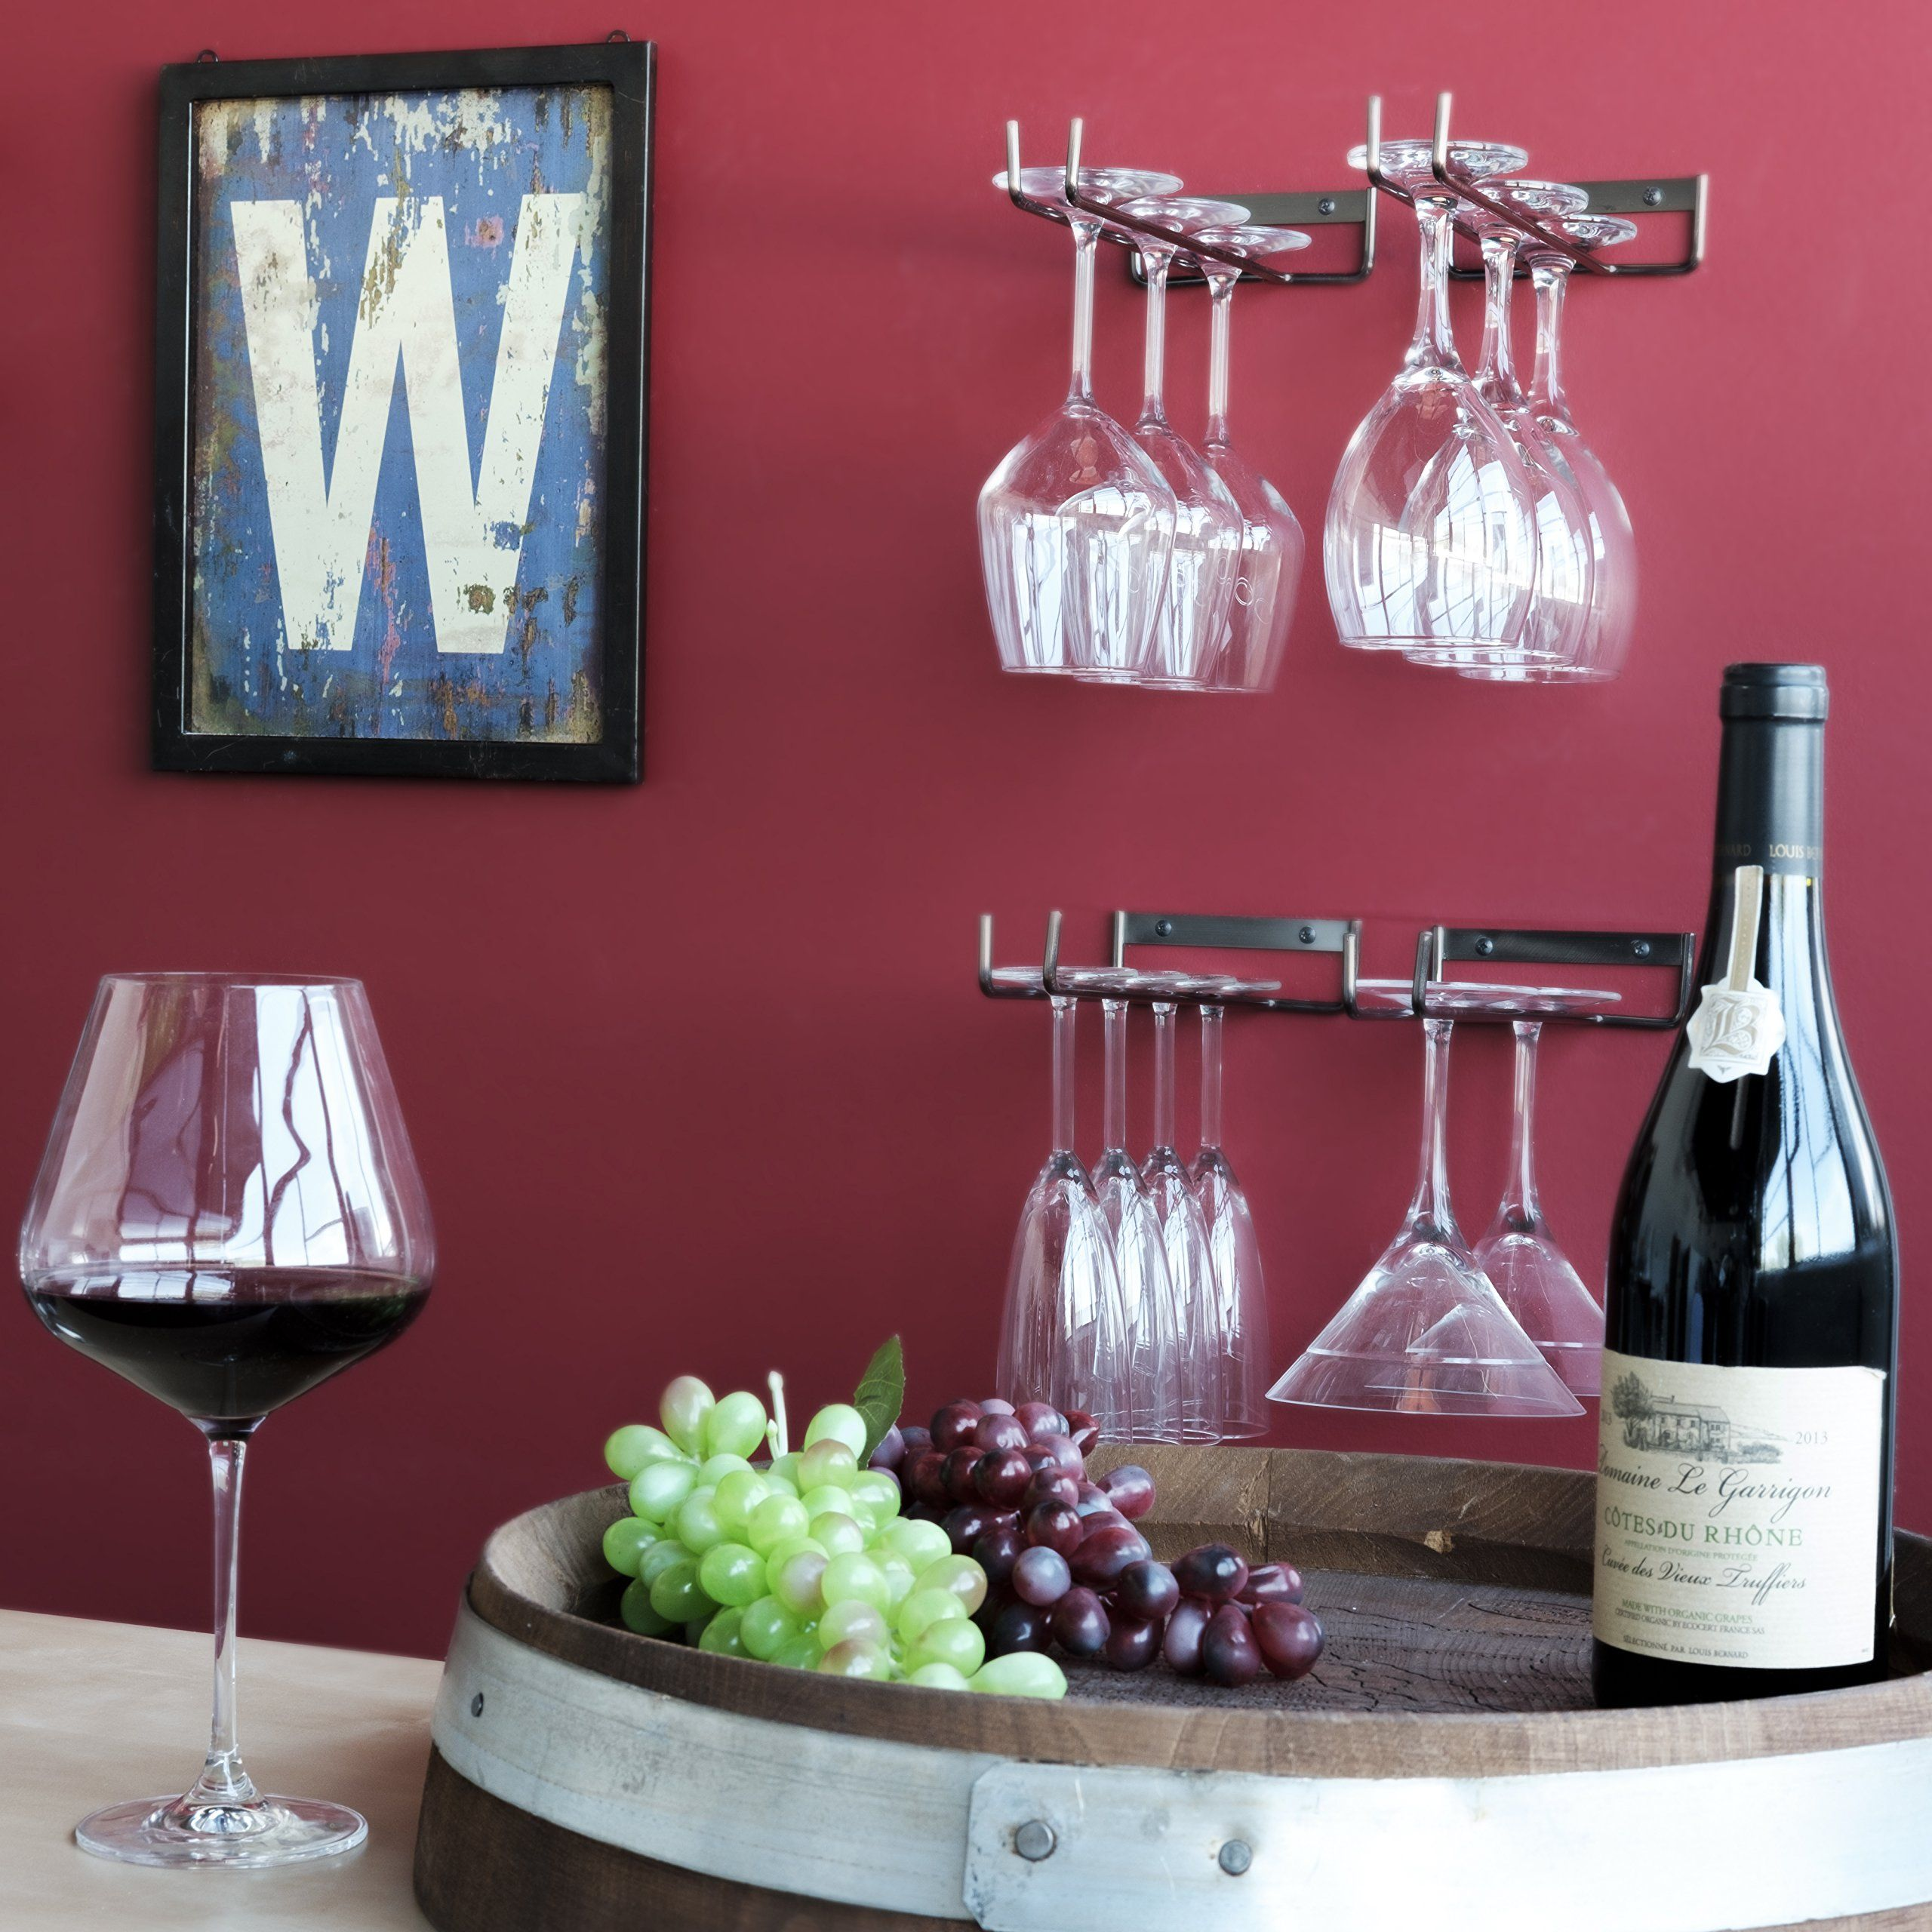 Wallniture Stemware Rack Wall Mount Wine Glass Holder Hanger Storage Oil Rubbed Set Of 4 Visit Wine Glass Hanger Wine Glass Holder Stemware Rack